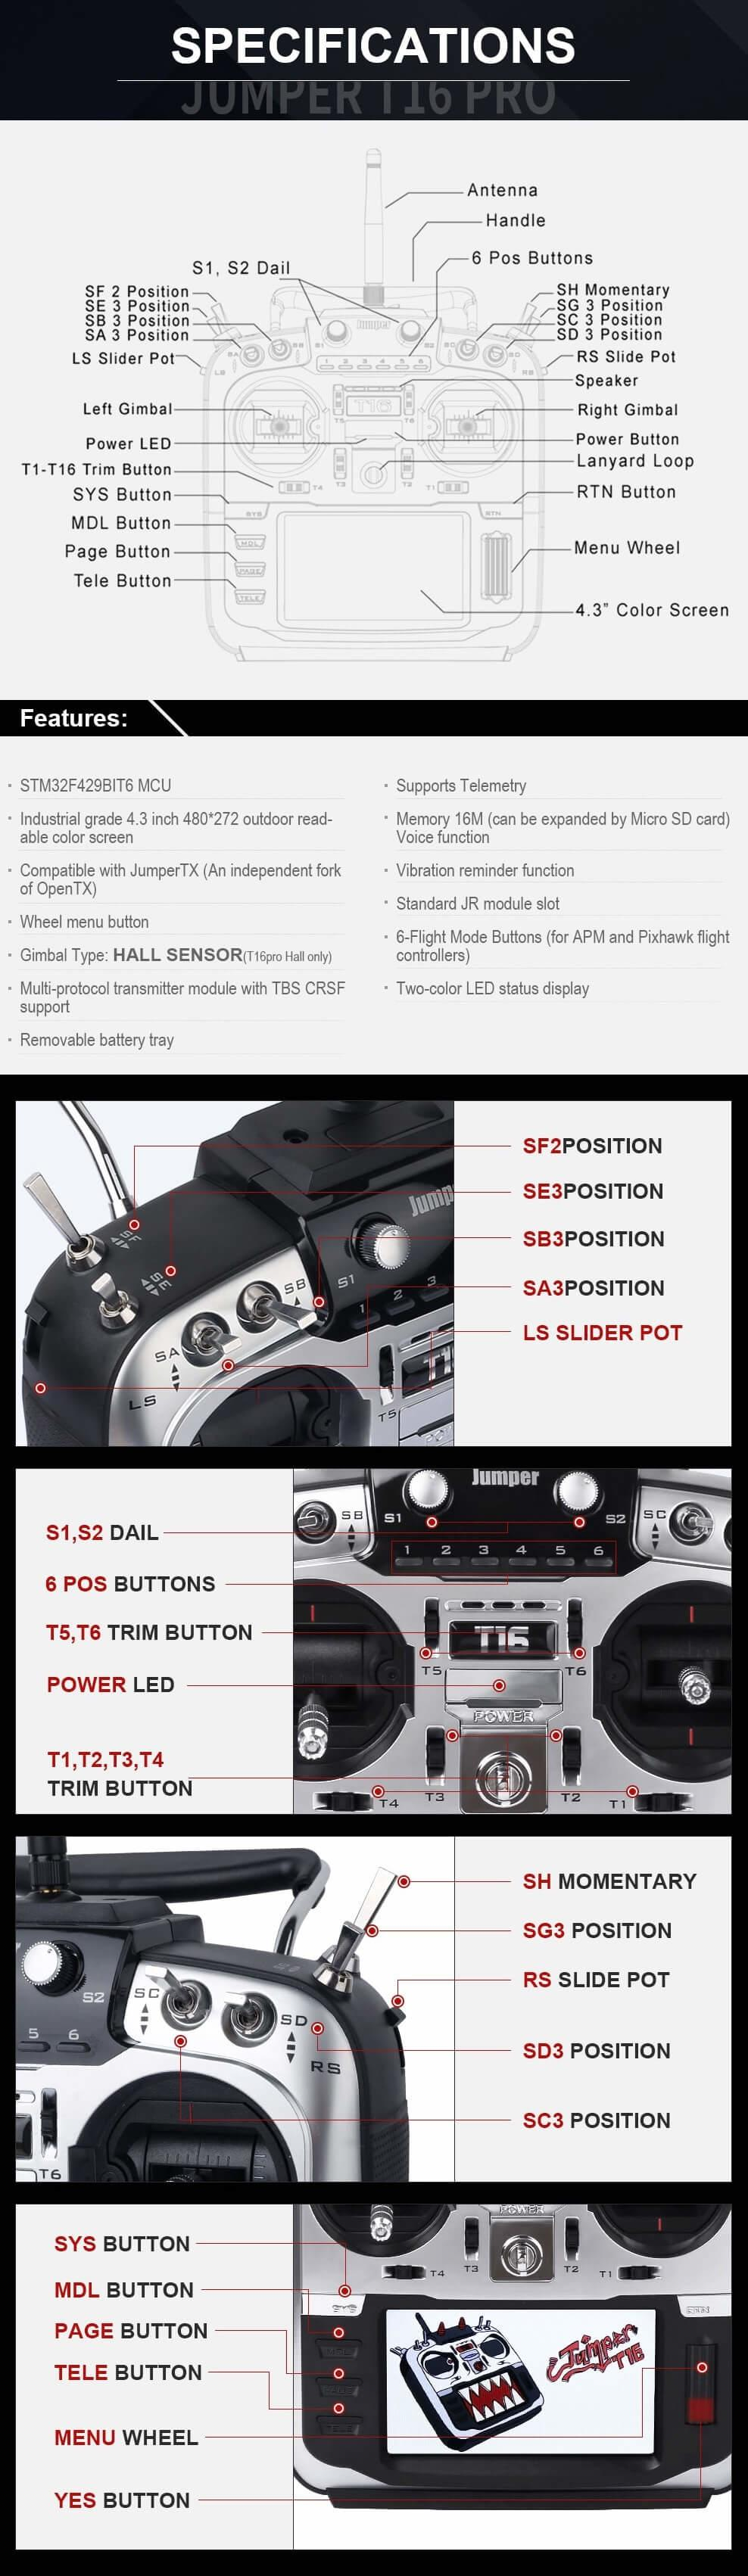 specs and switch layout on the transmitter